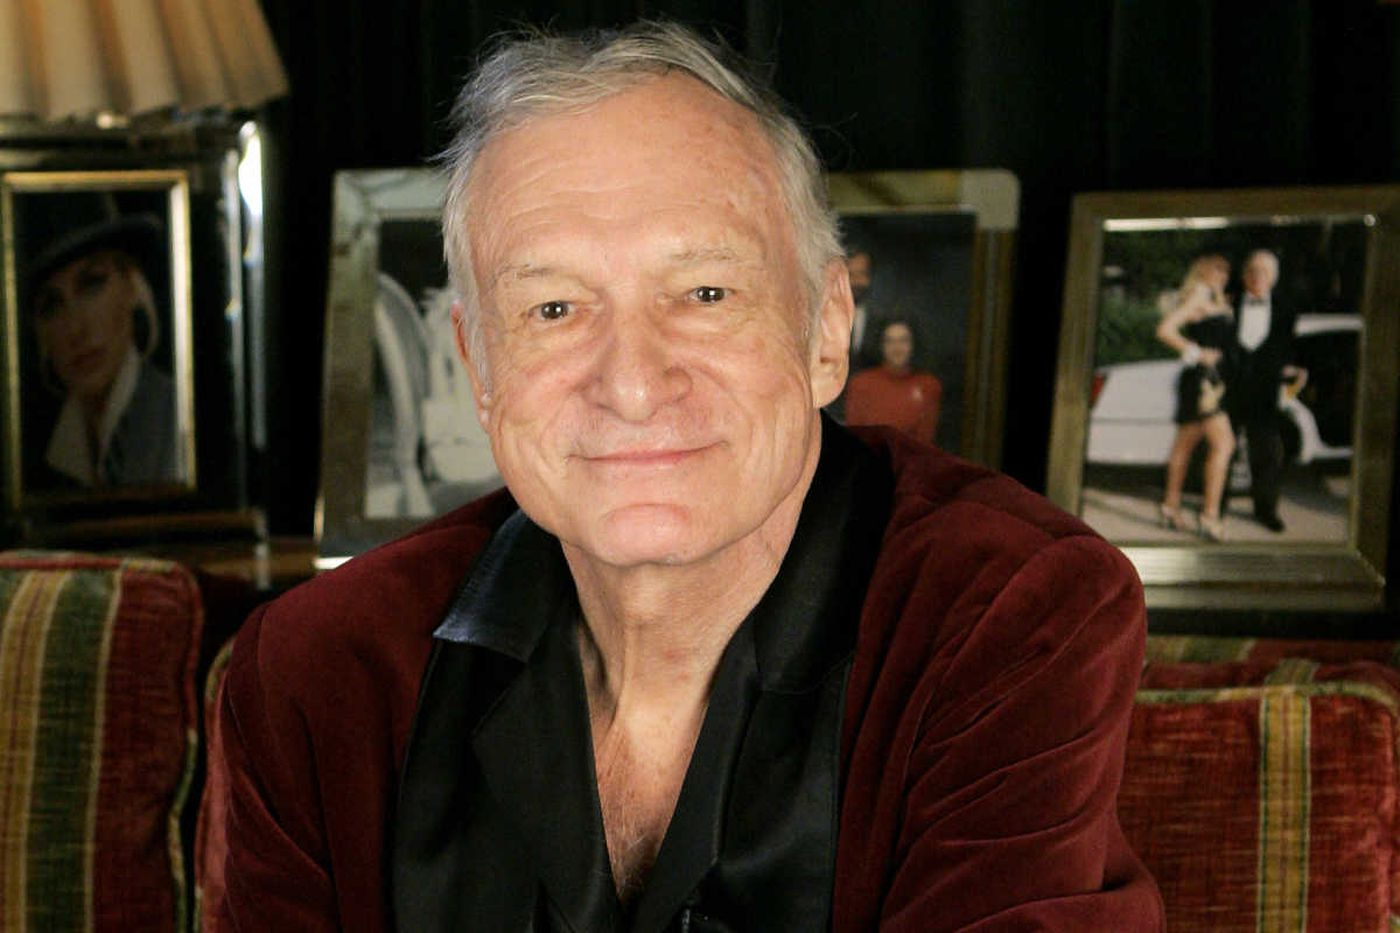 From the archives: Hef at 80, a life well-lived